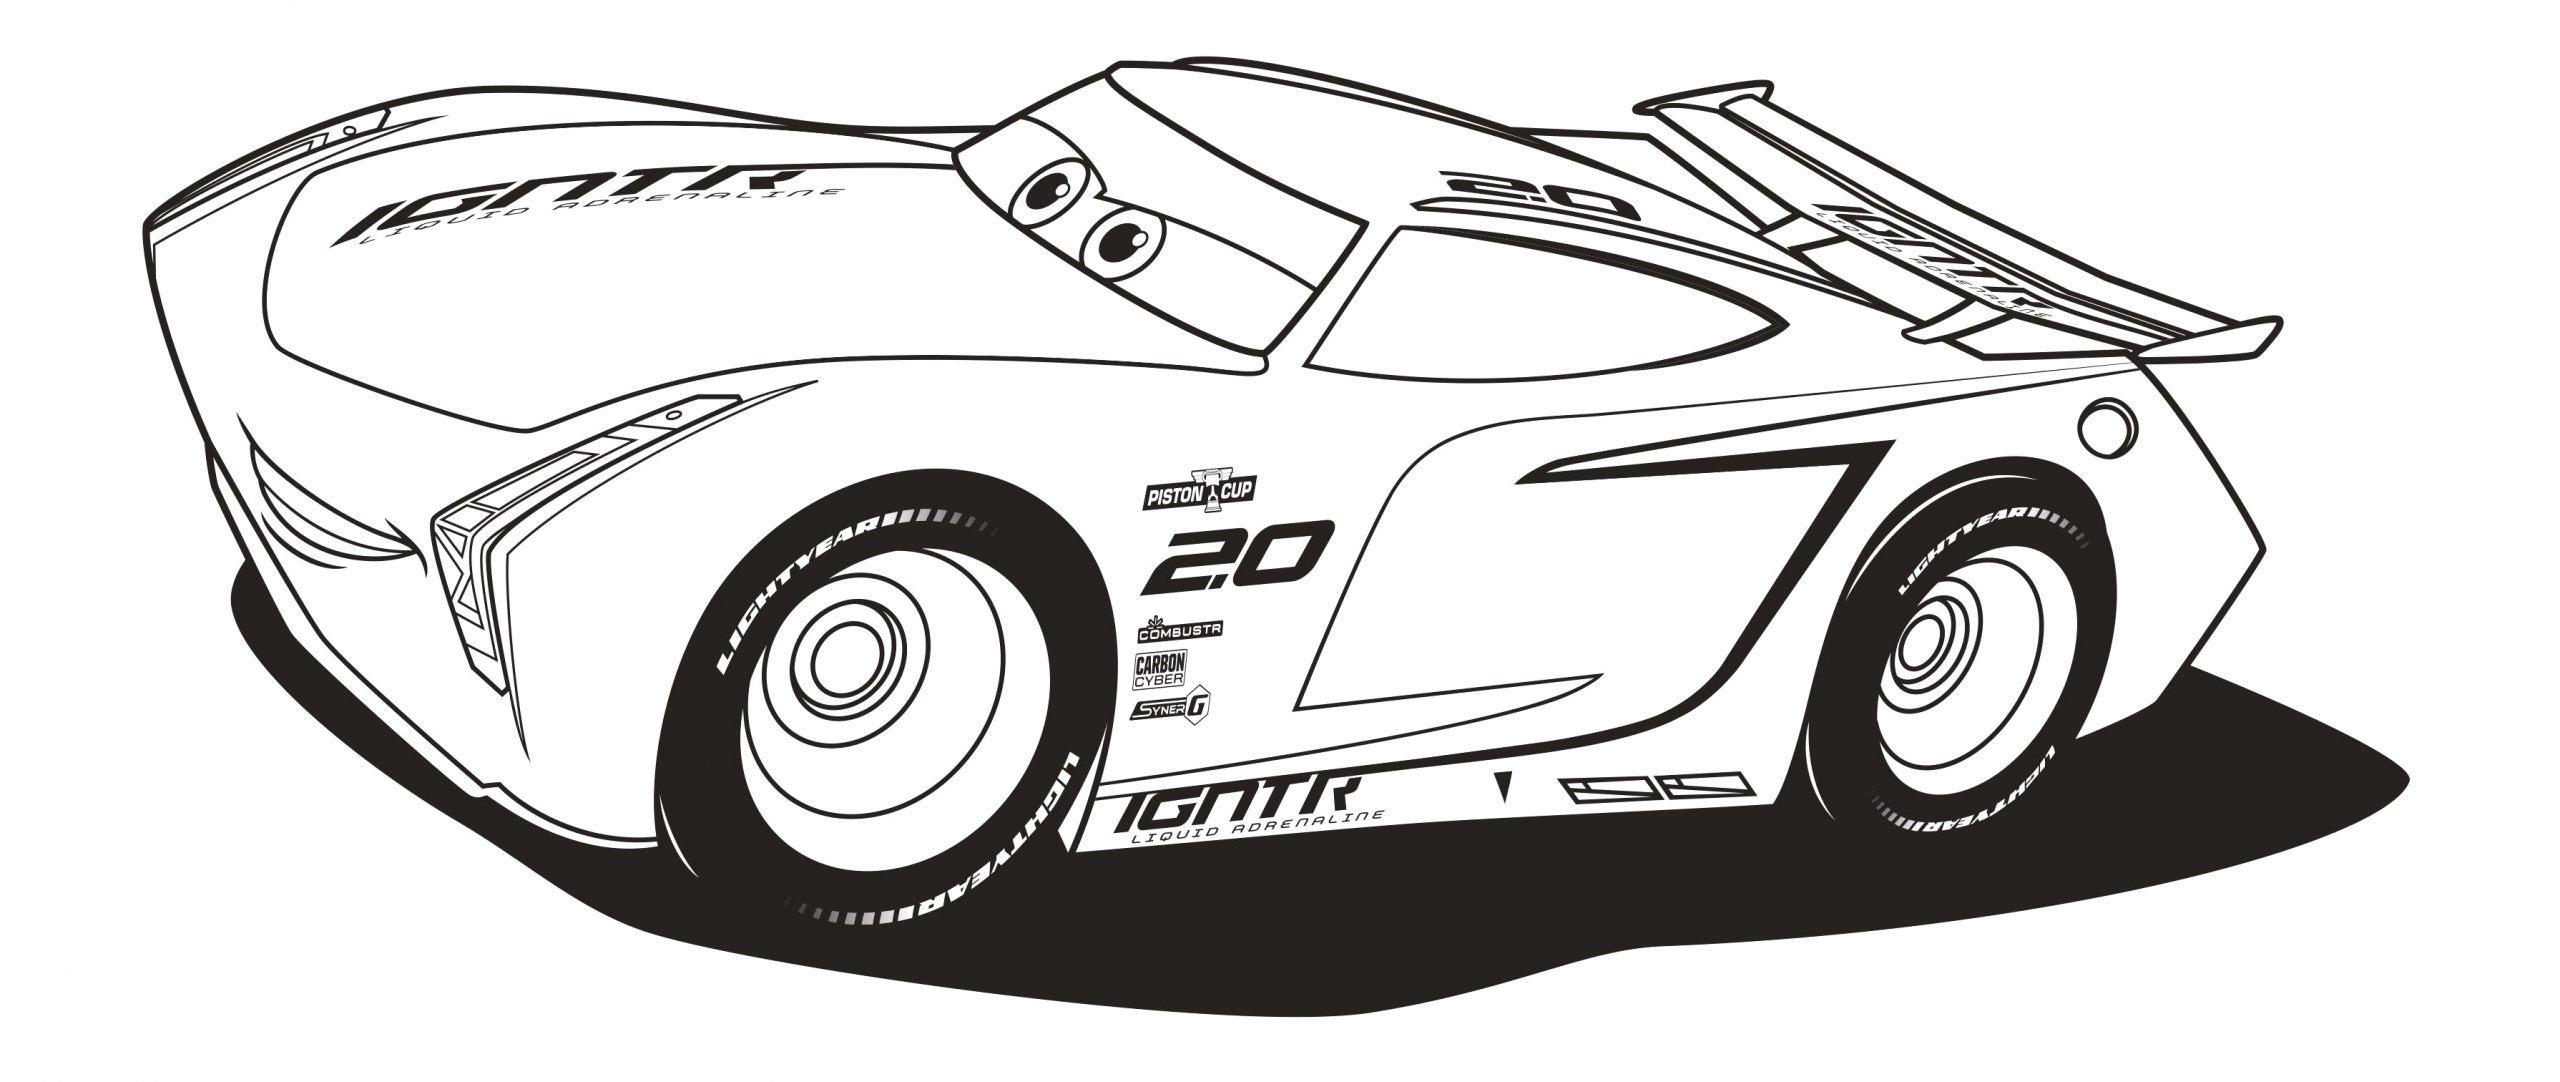 Jackson Storm and Lightning Mcqueen Coloring Pages Ausmalbilder Lightning Mcqueen Jackson Storm